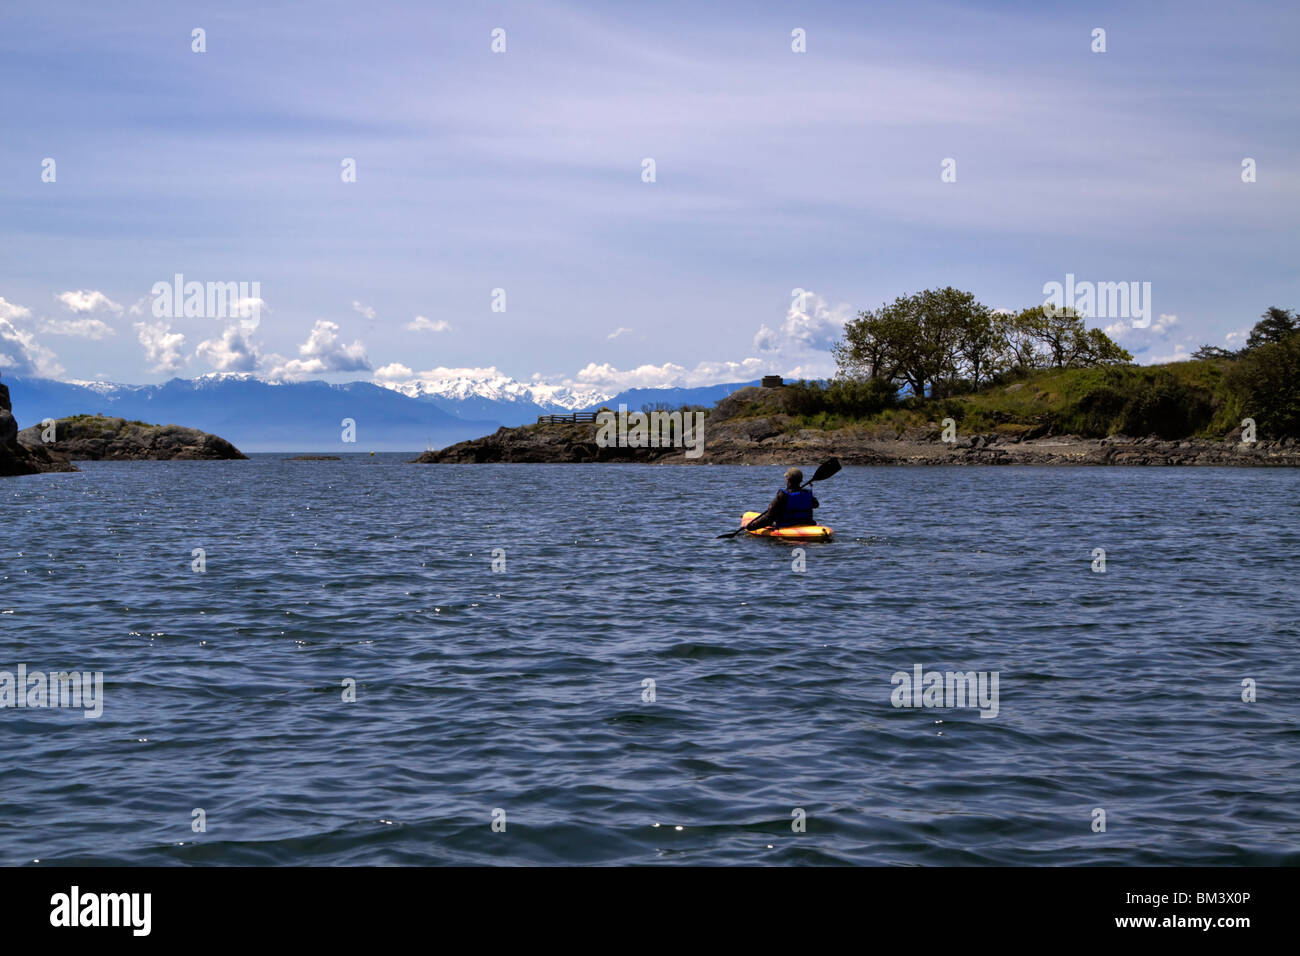 A kayaker paddles towards the 18 mile distant Olympic Mountains in the Middle Harbour, Victoria, British Columbia, - Stock Image